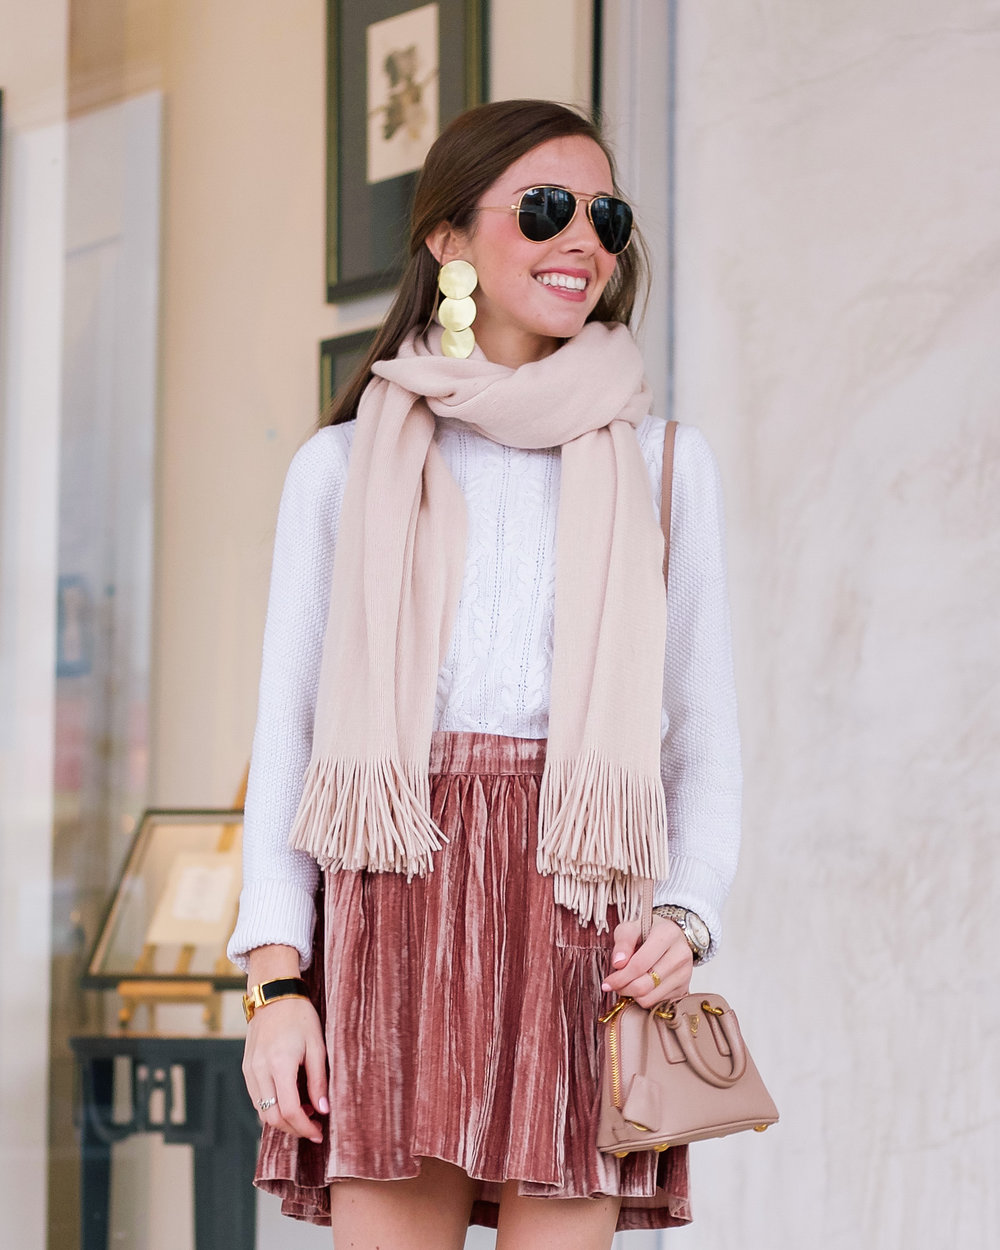 fashion blogger lcb style winter outfit madewell-6.jpg